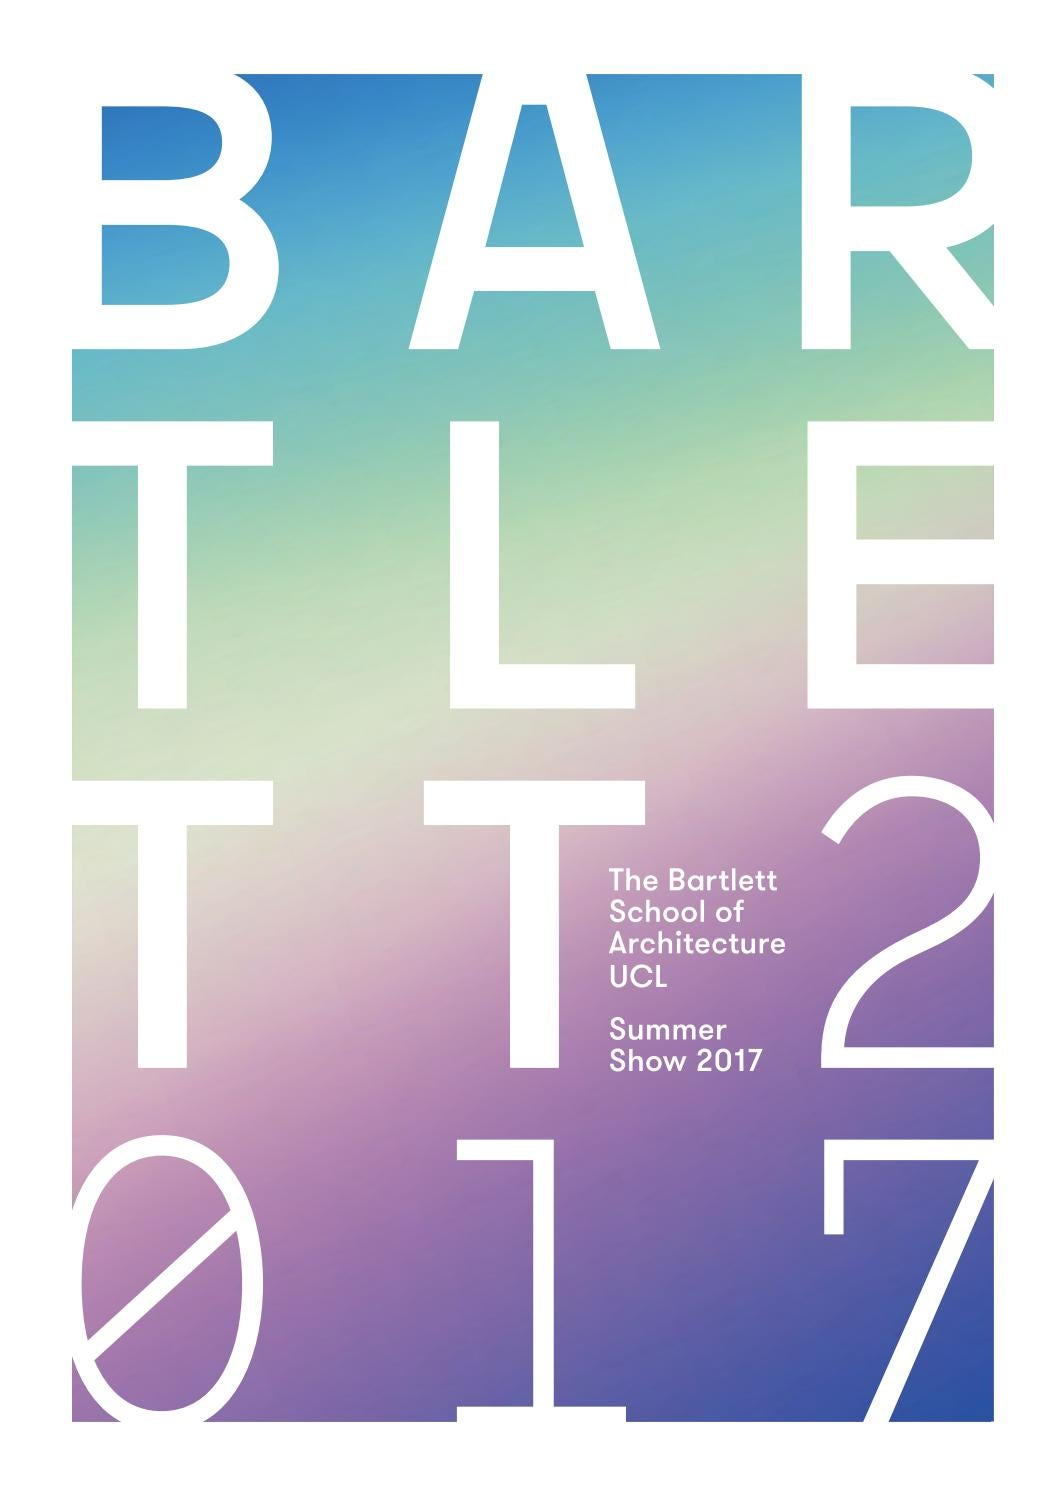 Bartlett Summer Show 2017 Book by The Bartlett School of Architecture UCL -  issuu 1cdd90a2968